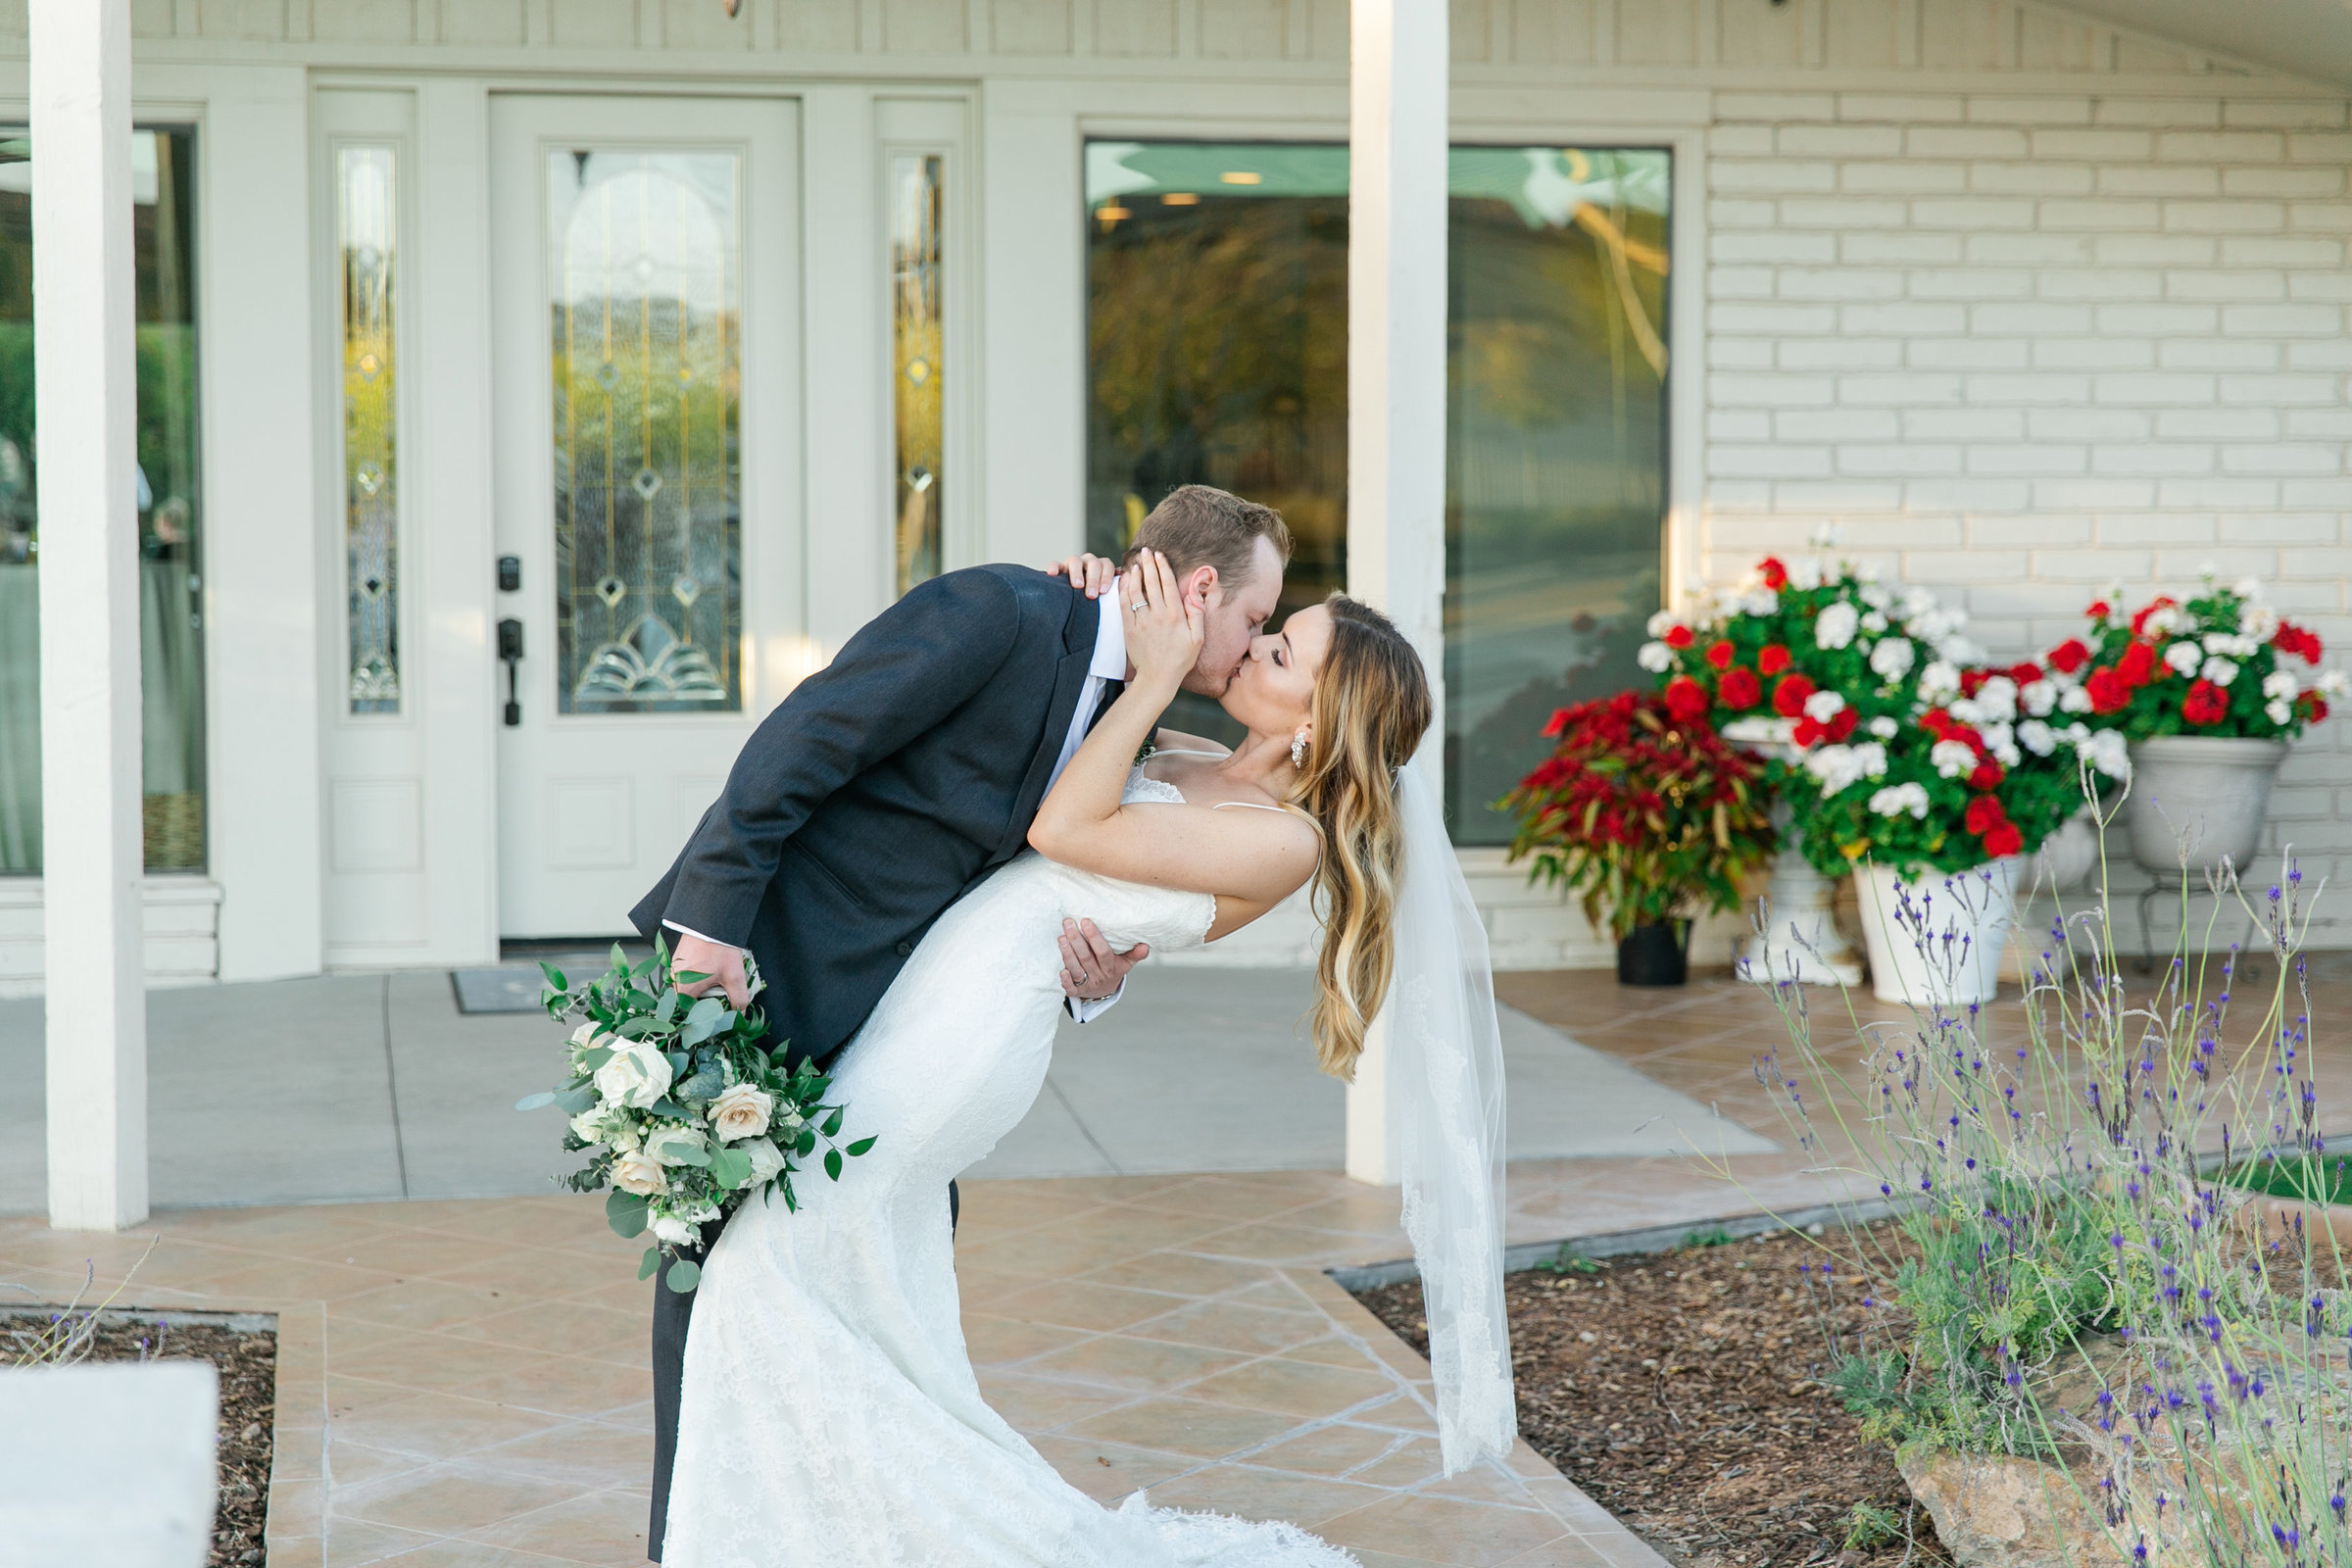 Karlie Colleen Photography - Gather Estates Venue Arizona - Sarah & Brad-795